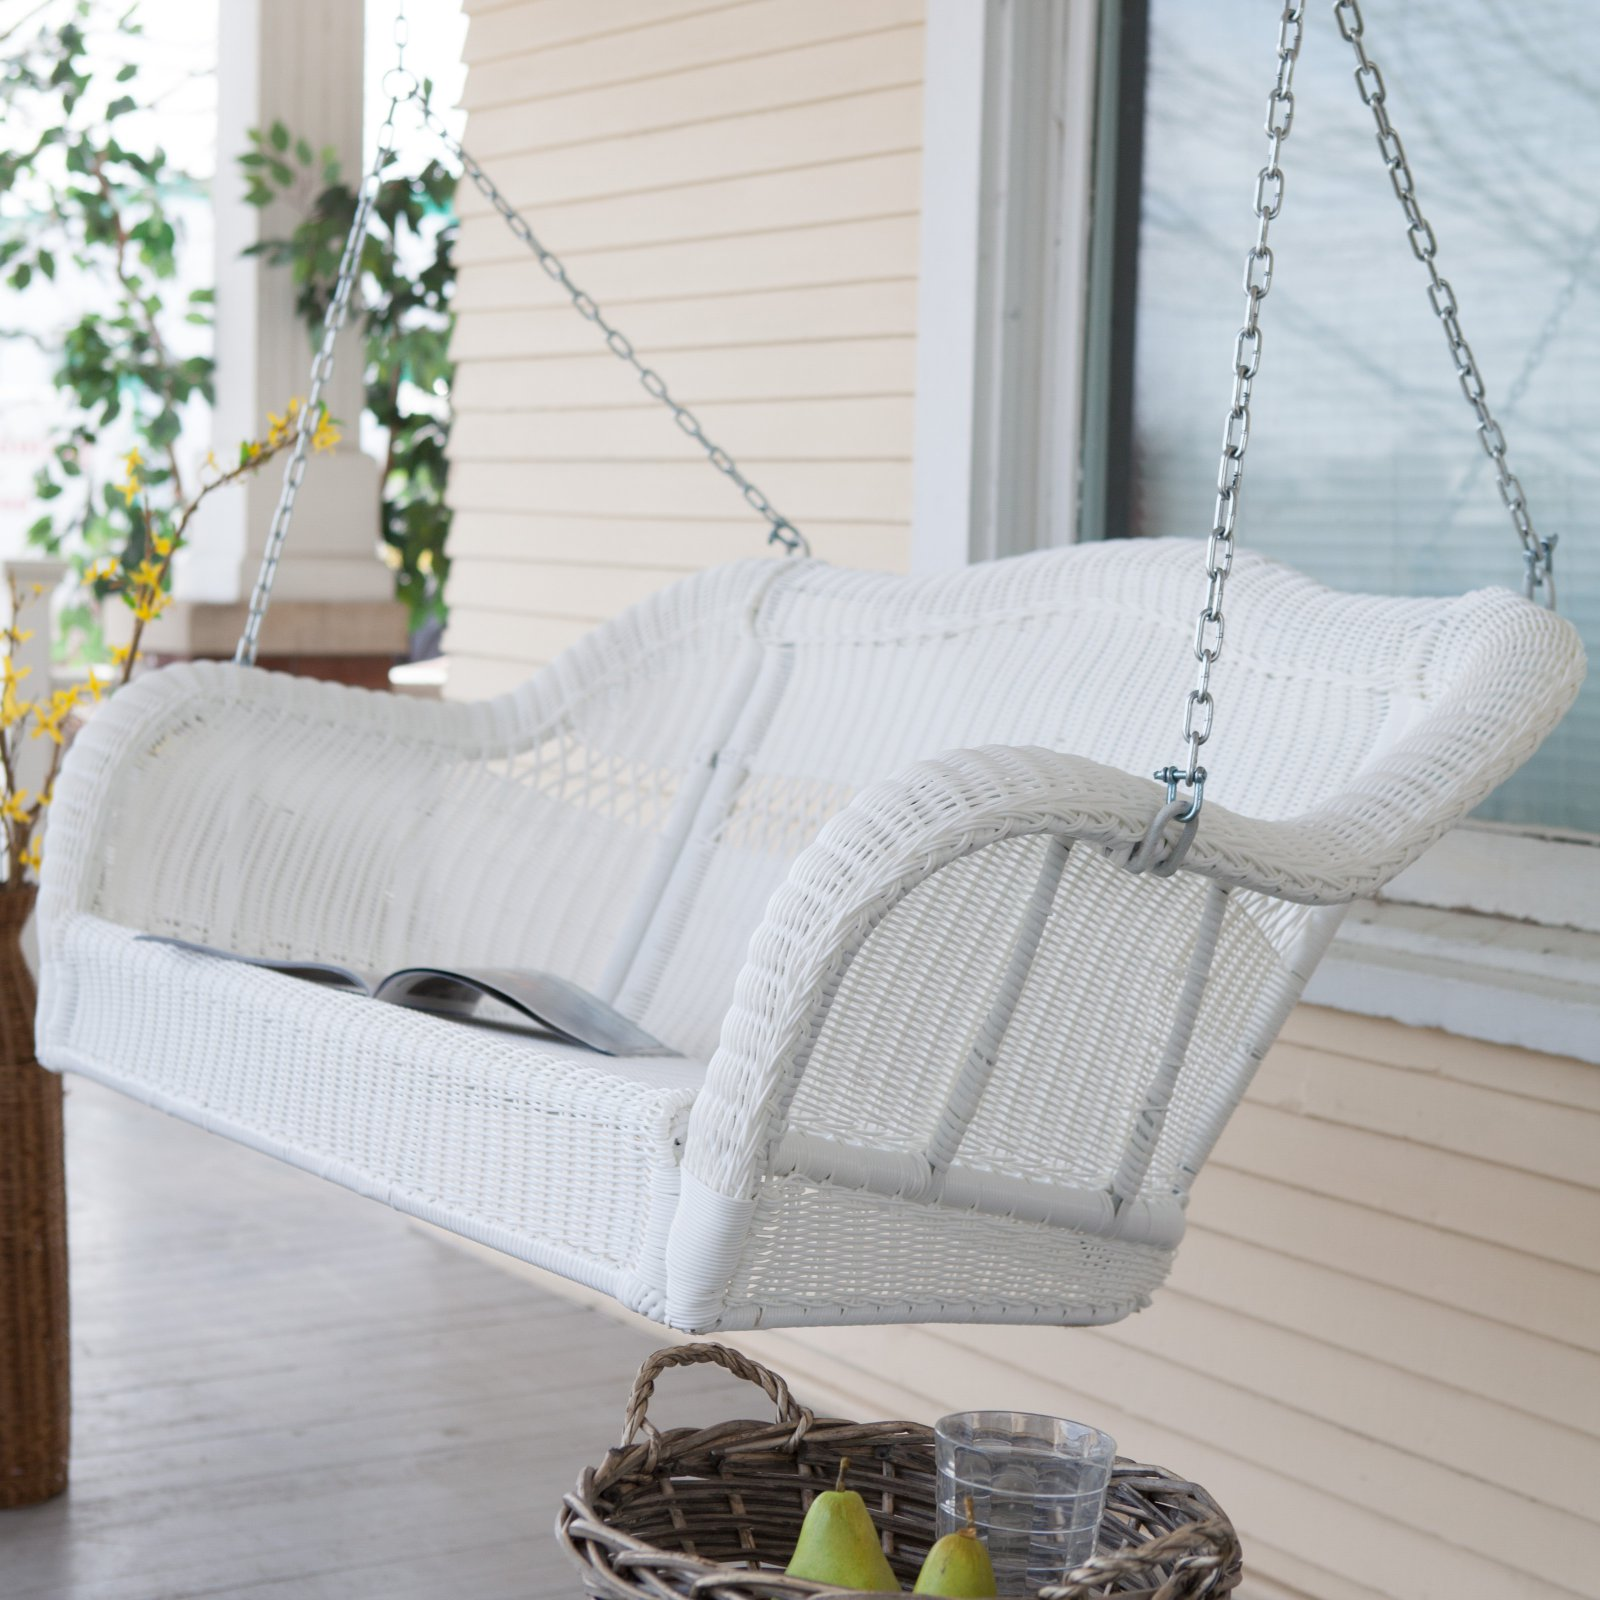 Coral Coast Casco Bay Resin Wicker Porch Swing by Chi Wing Rattan Factory